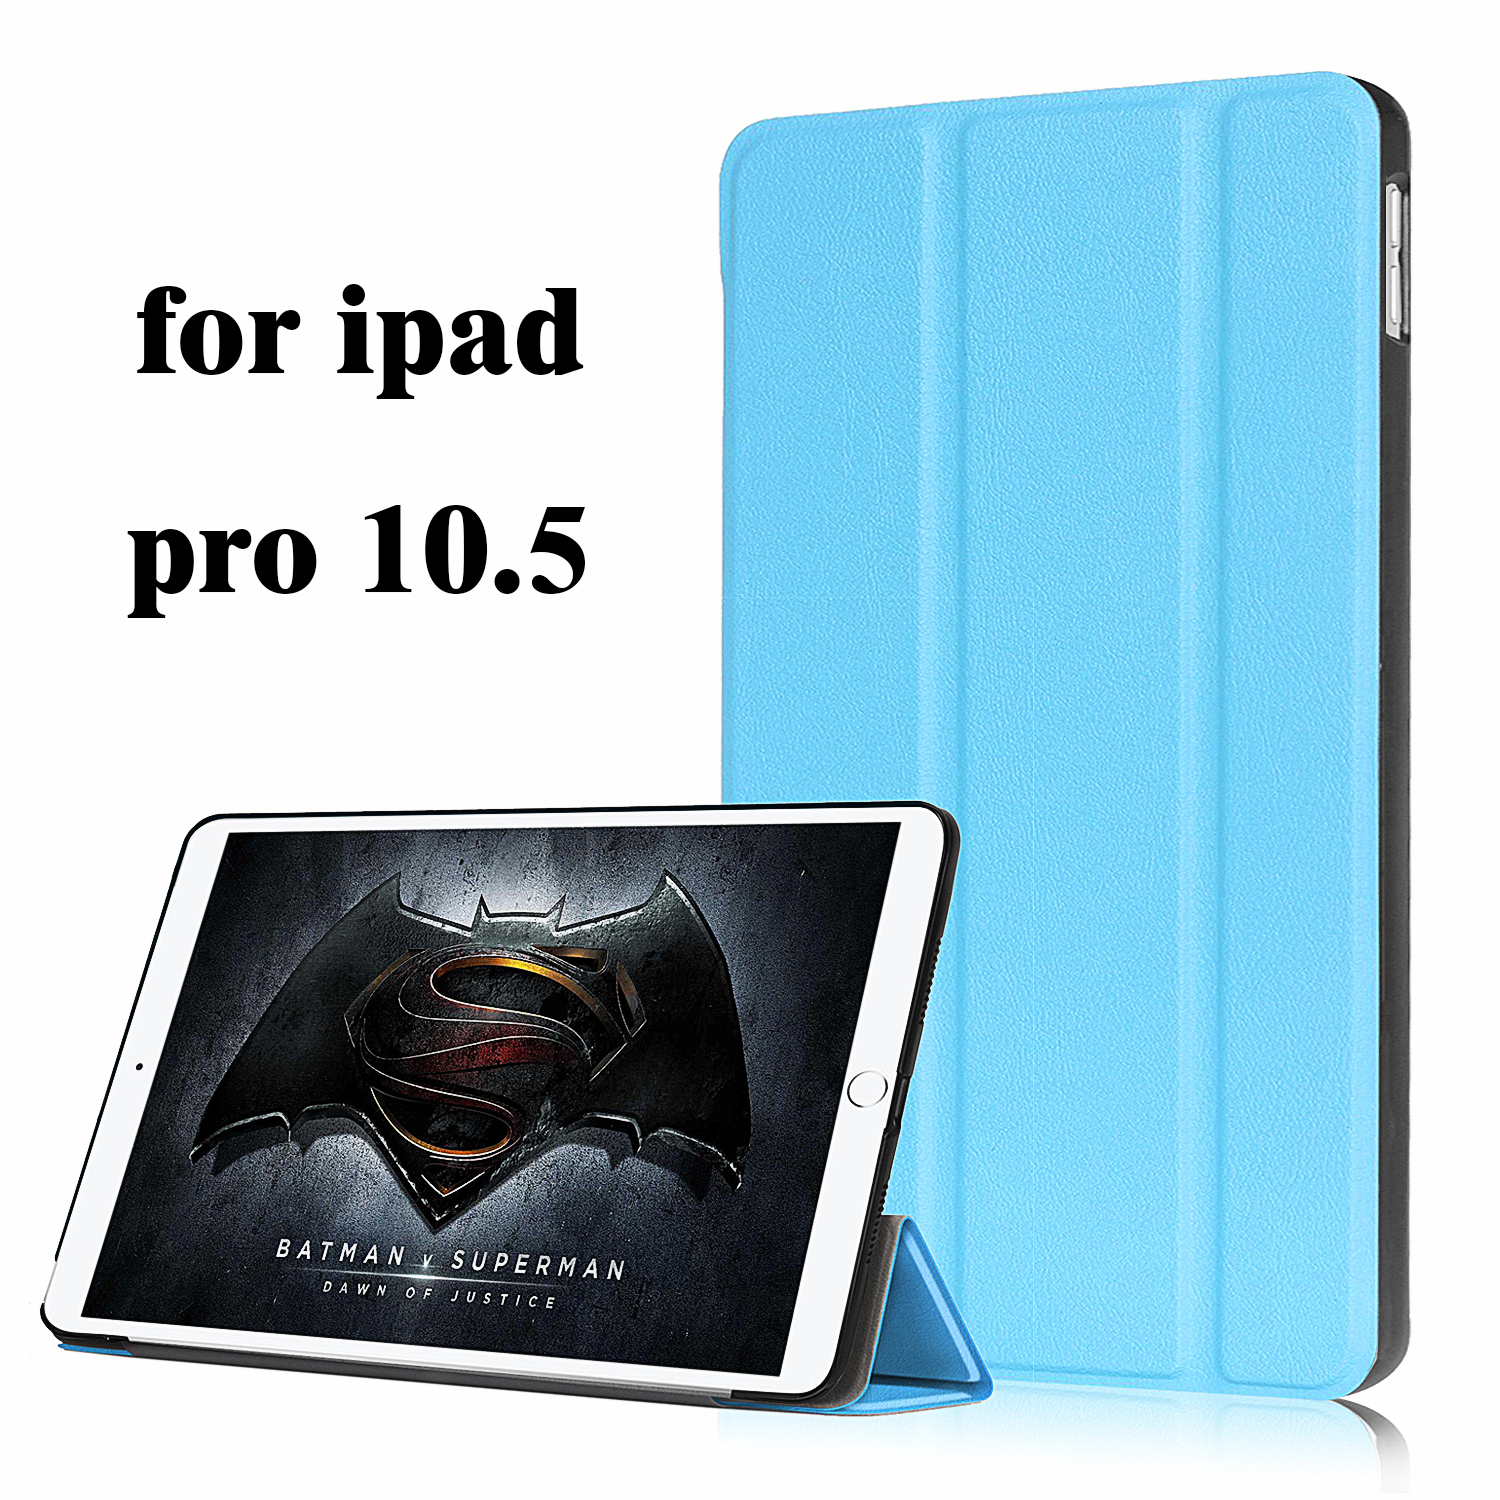 fashion Case for iPad Pro 10.5 2017, PU Leather Front Cover+PC Auto Sleep Smart case for New iPad 10.5inch 2017 Release